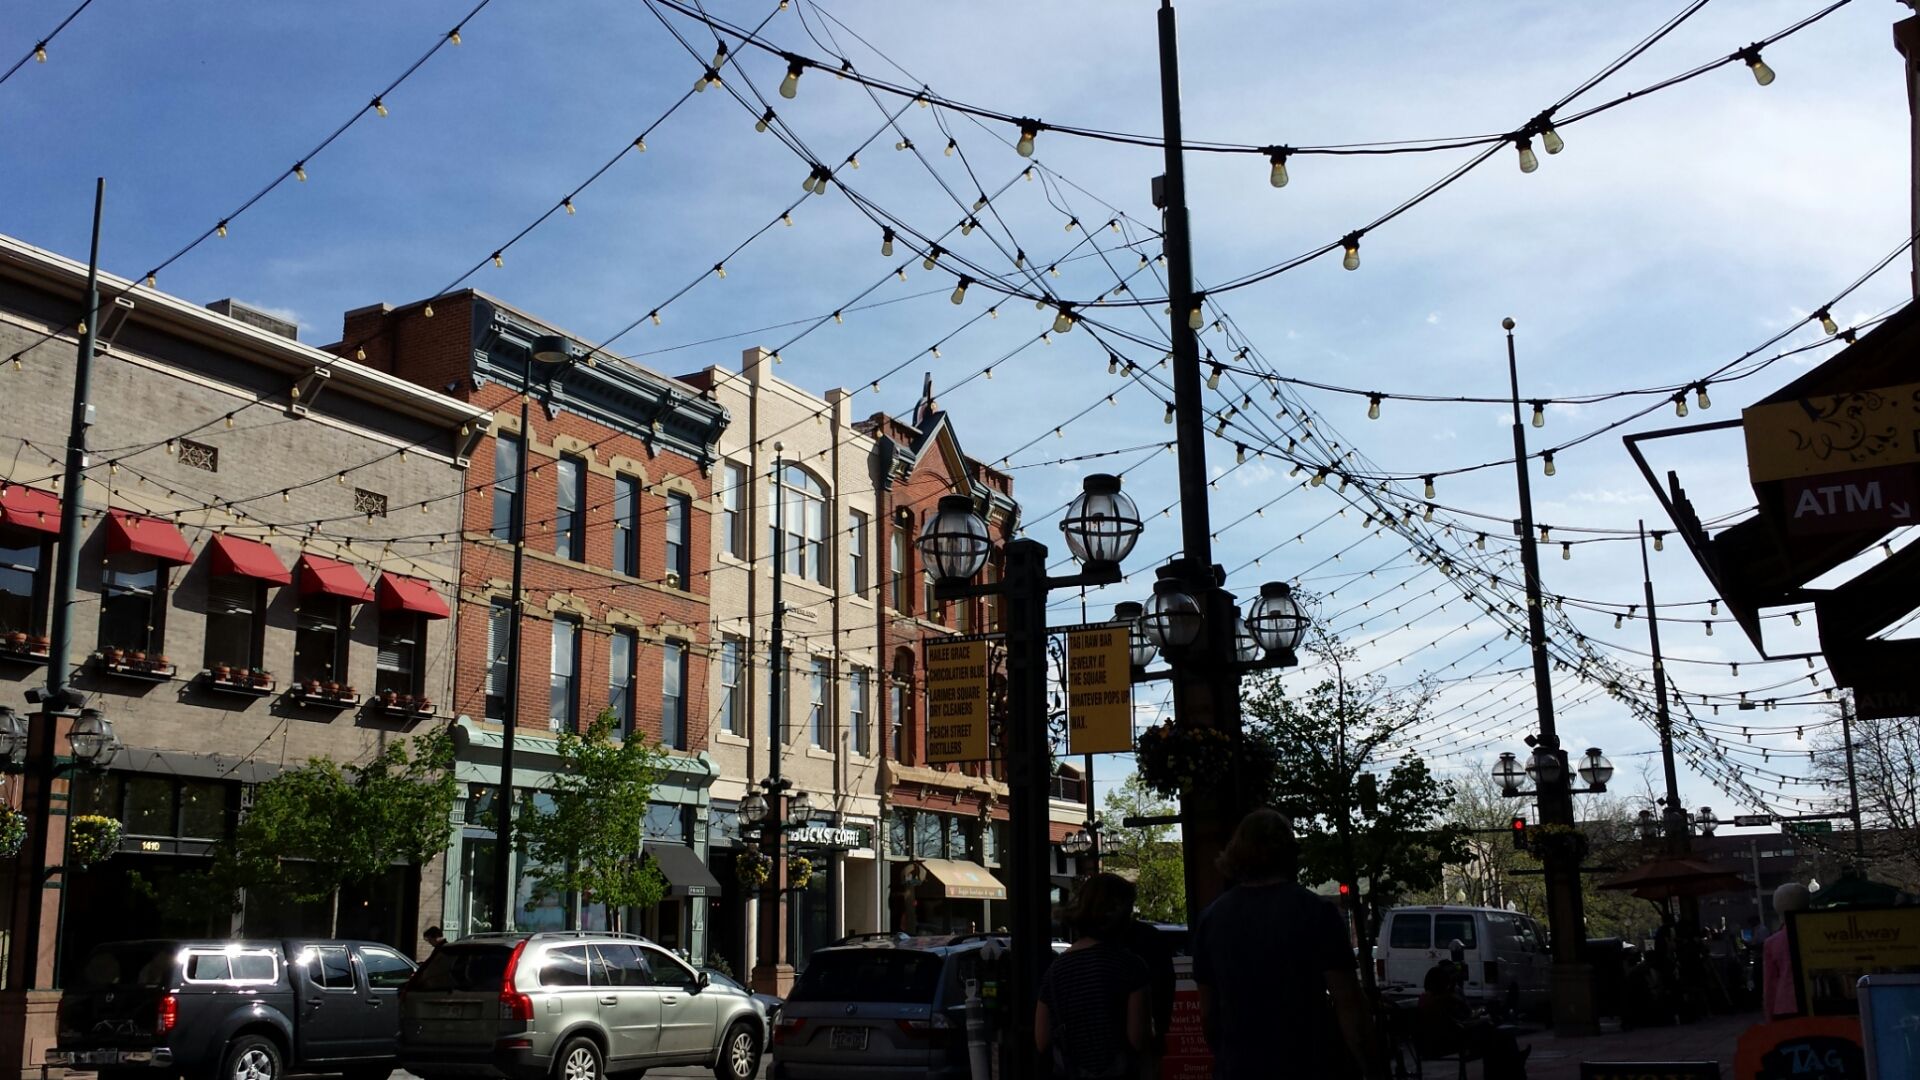 Body- Larimer Square during the day